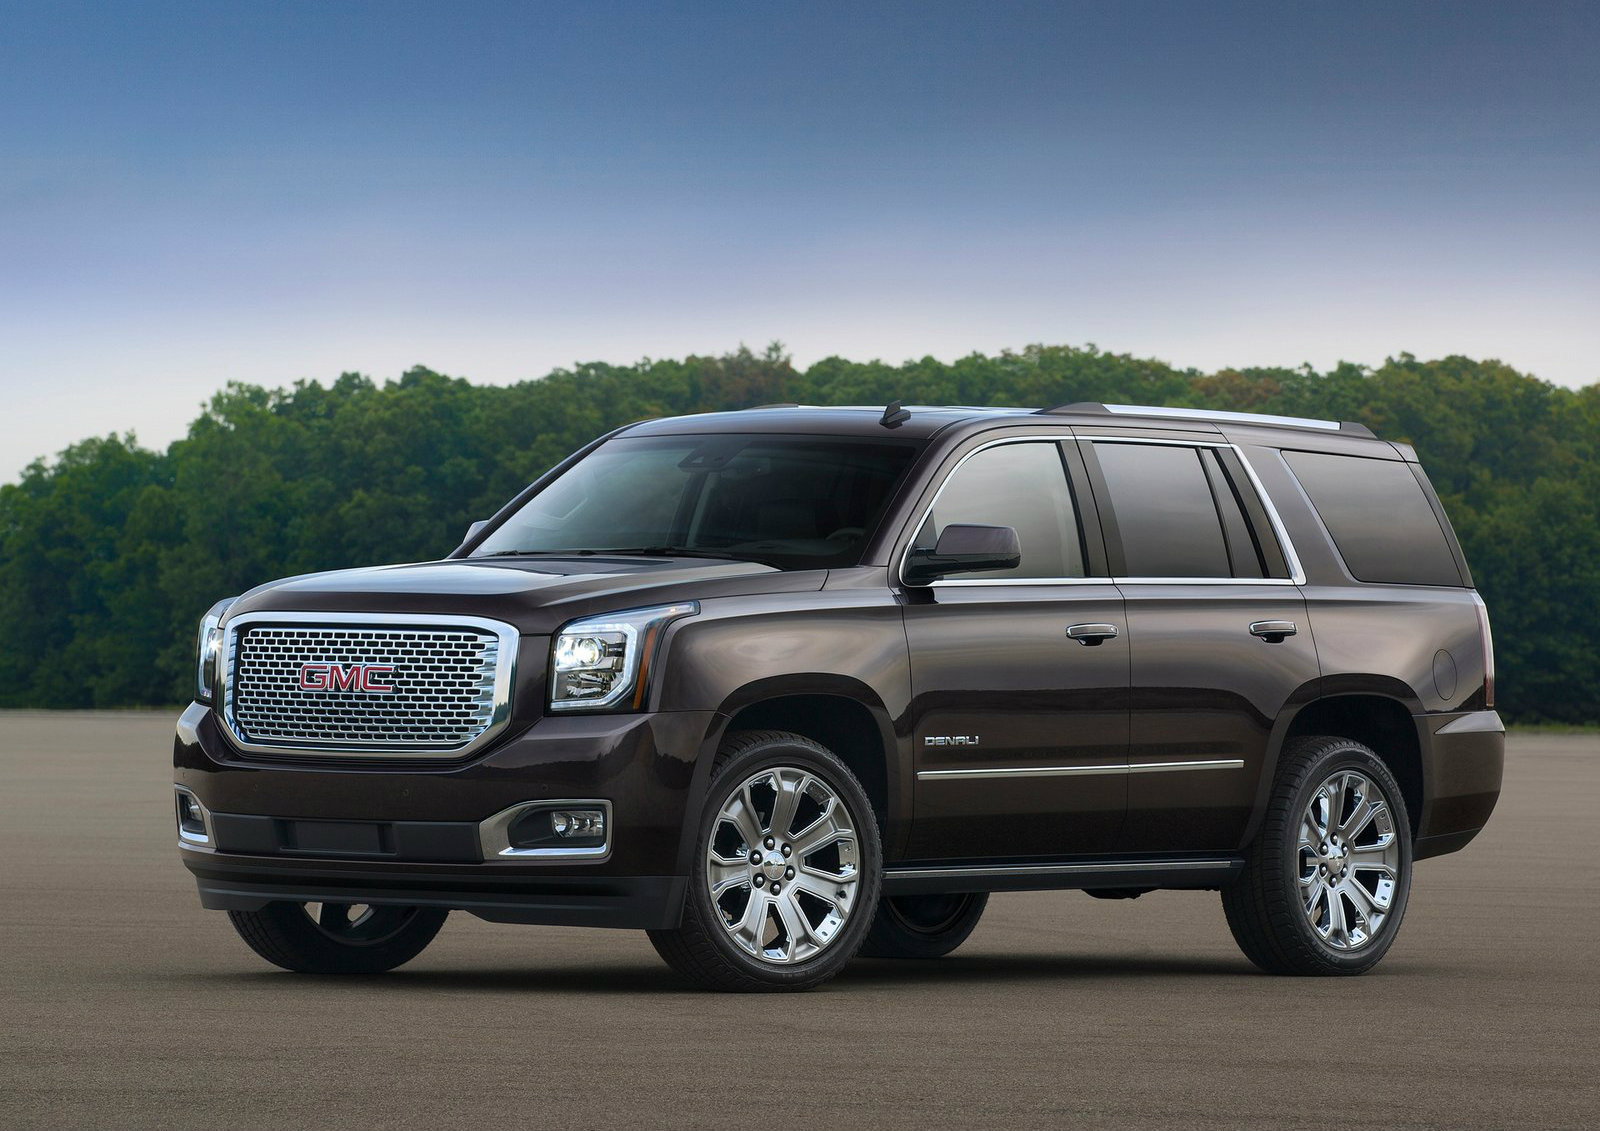 gm full size suvs updated for the 2015i model year autoevolution